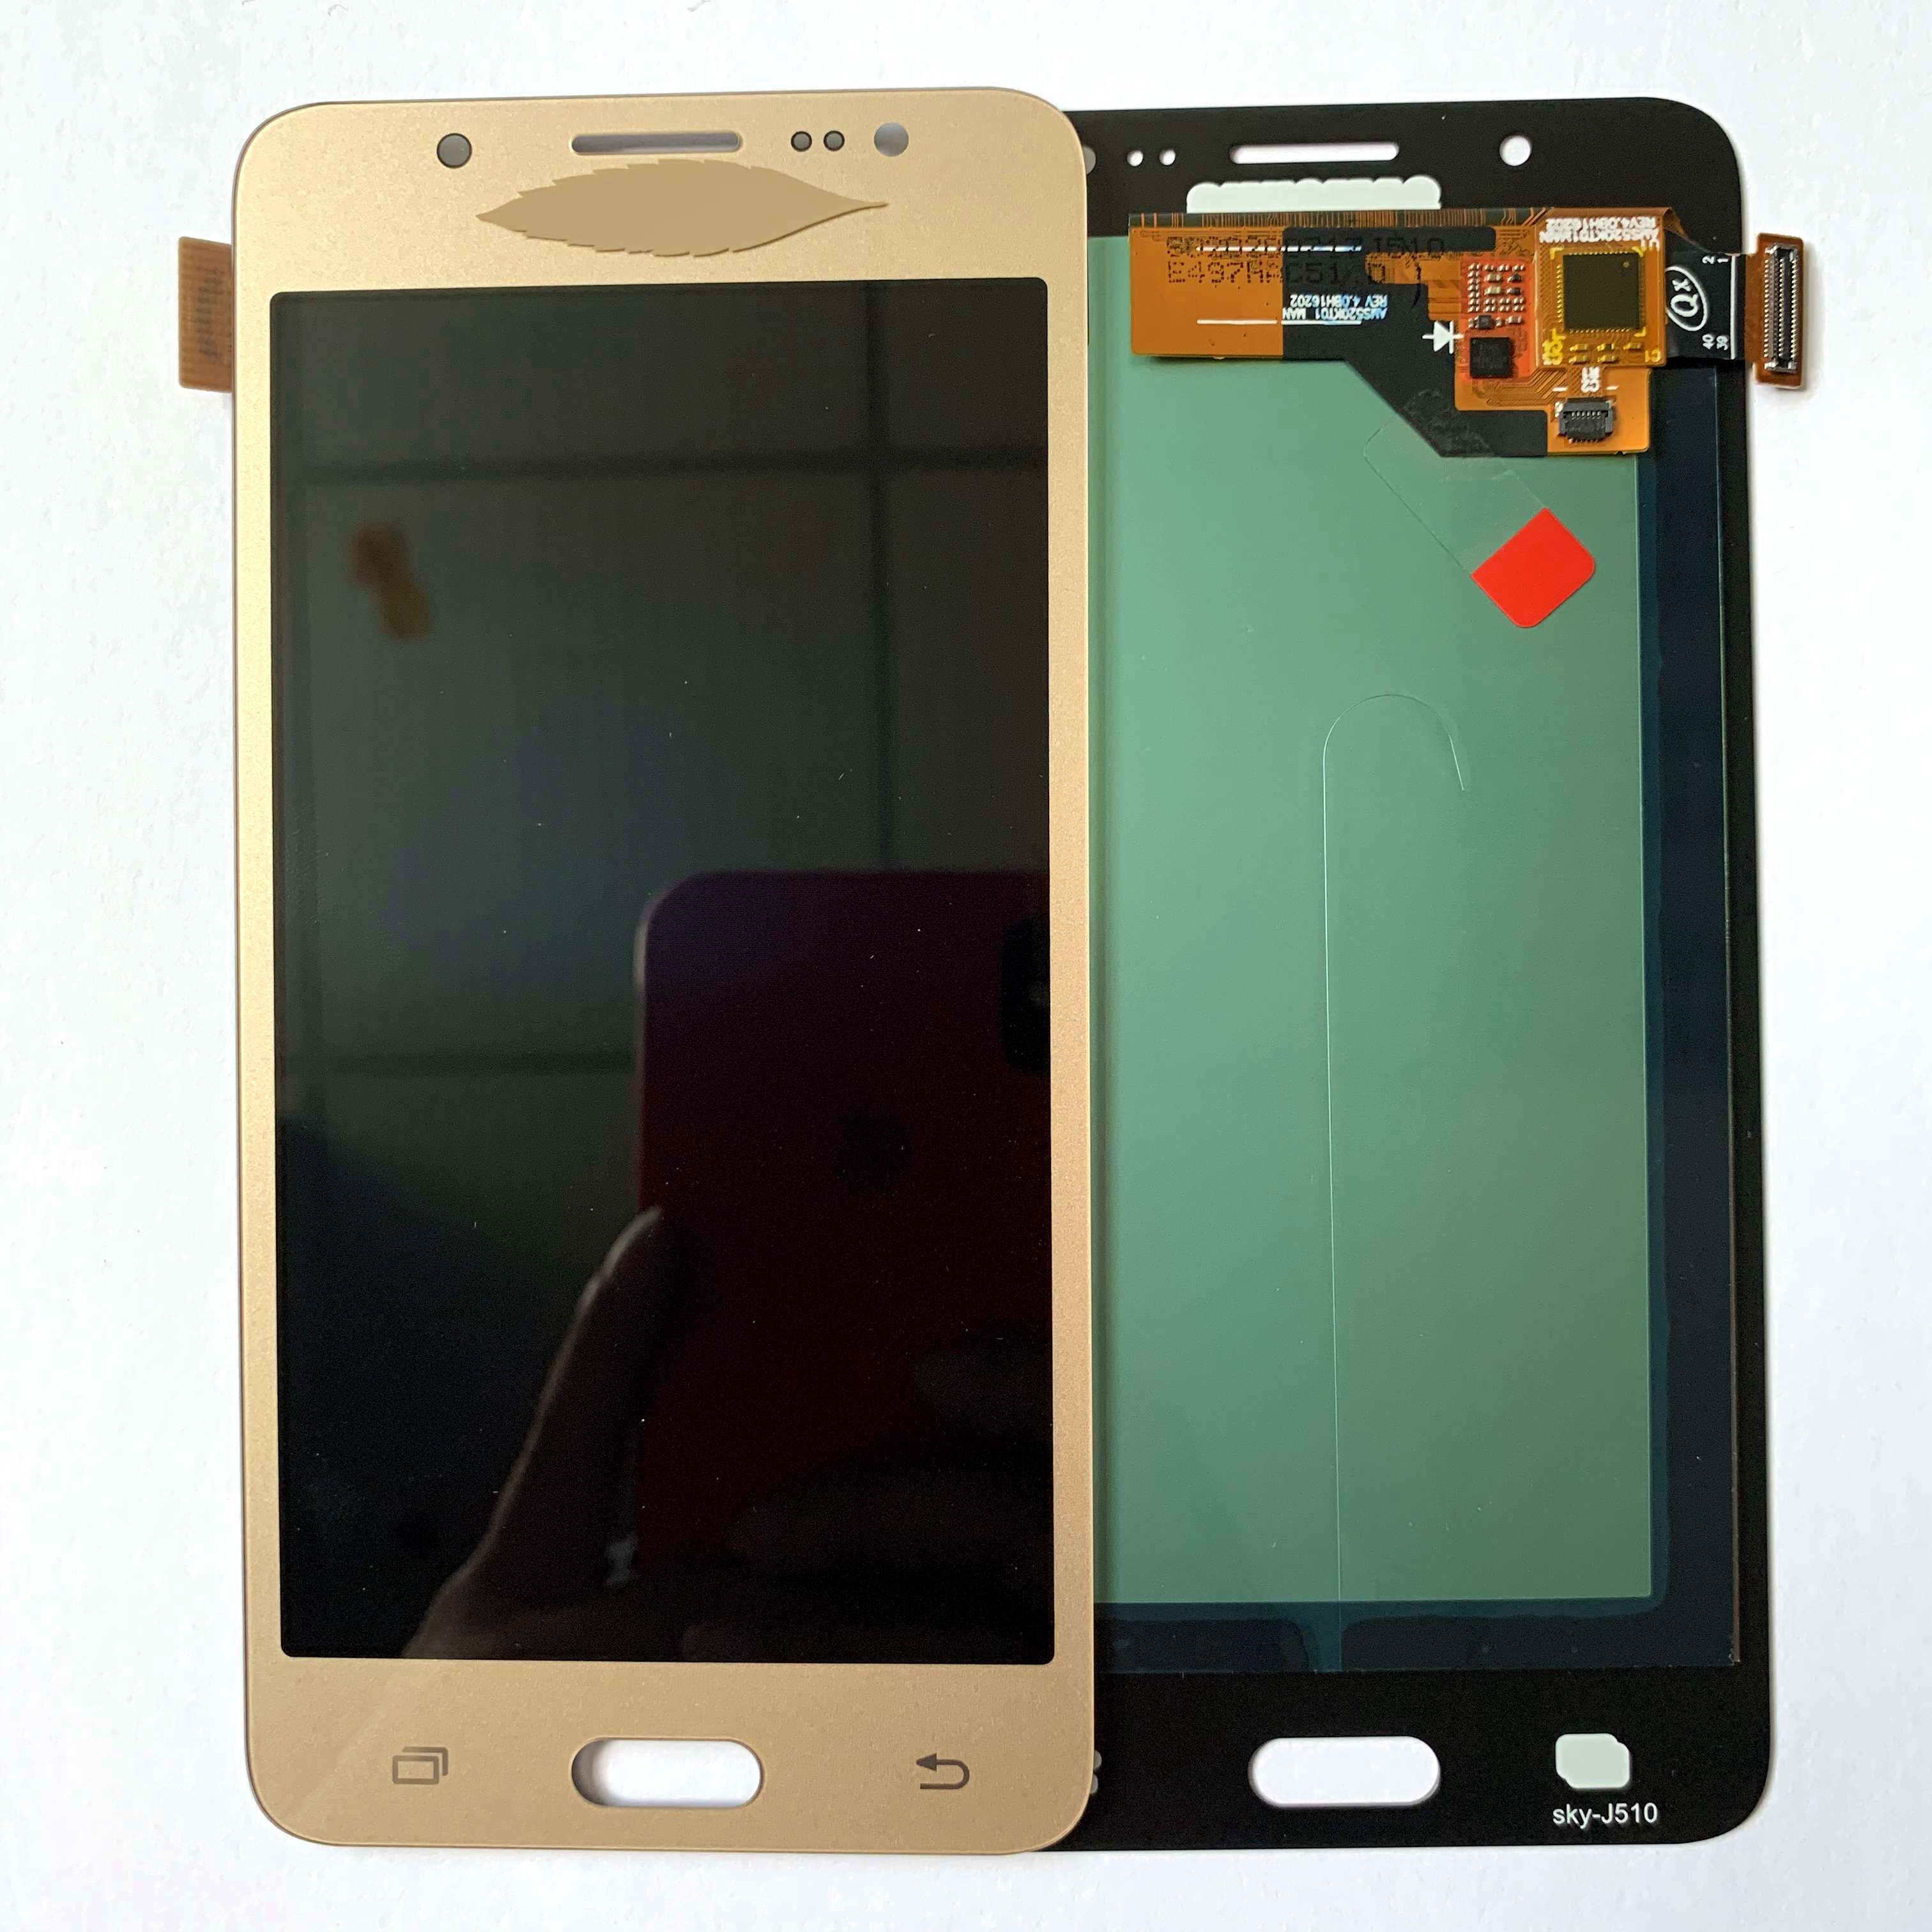 Super <font><b>AMOLED</b></font> LCD For Samsung Galaxy J5 2015 <font><b>J500</b></font> LCD Display SM-J500FN J500M Touch Screen Digitizer Assembly image